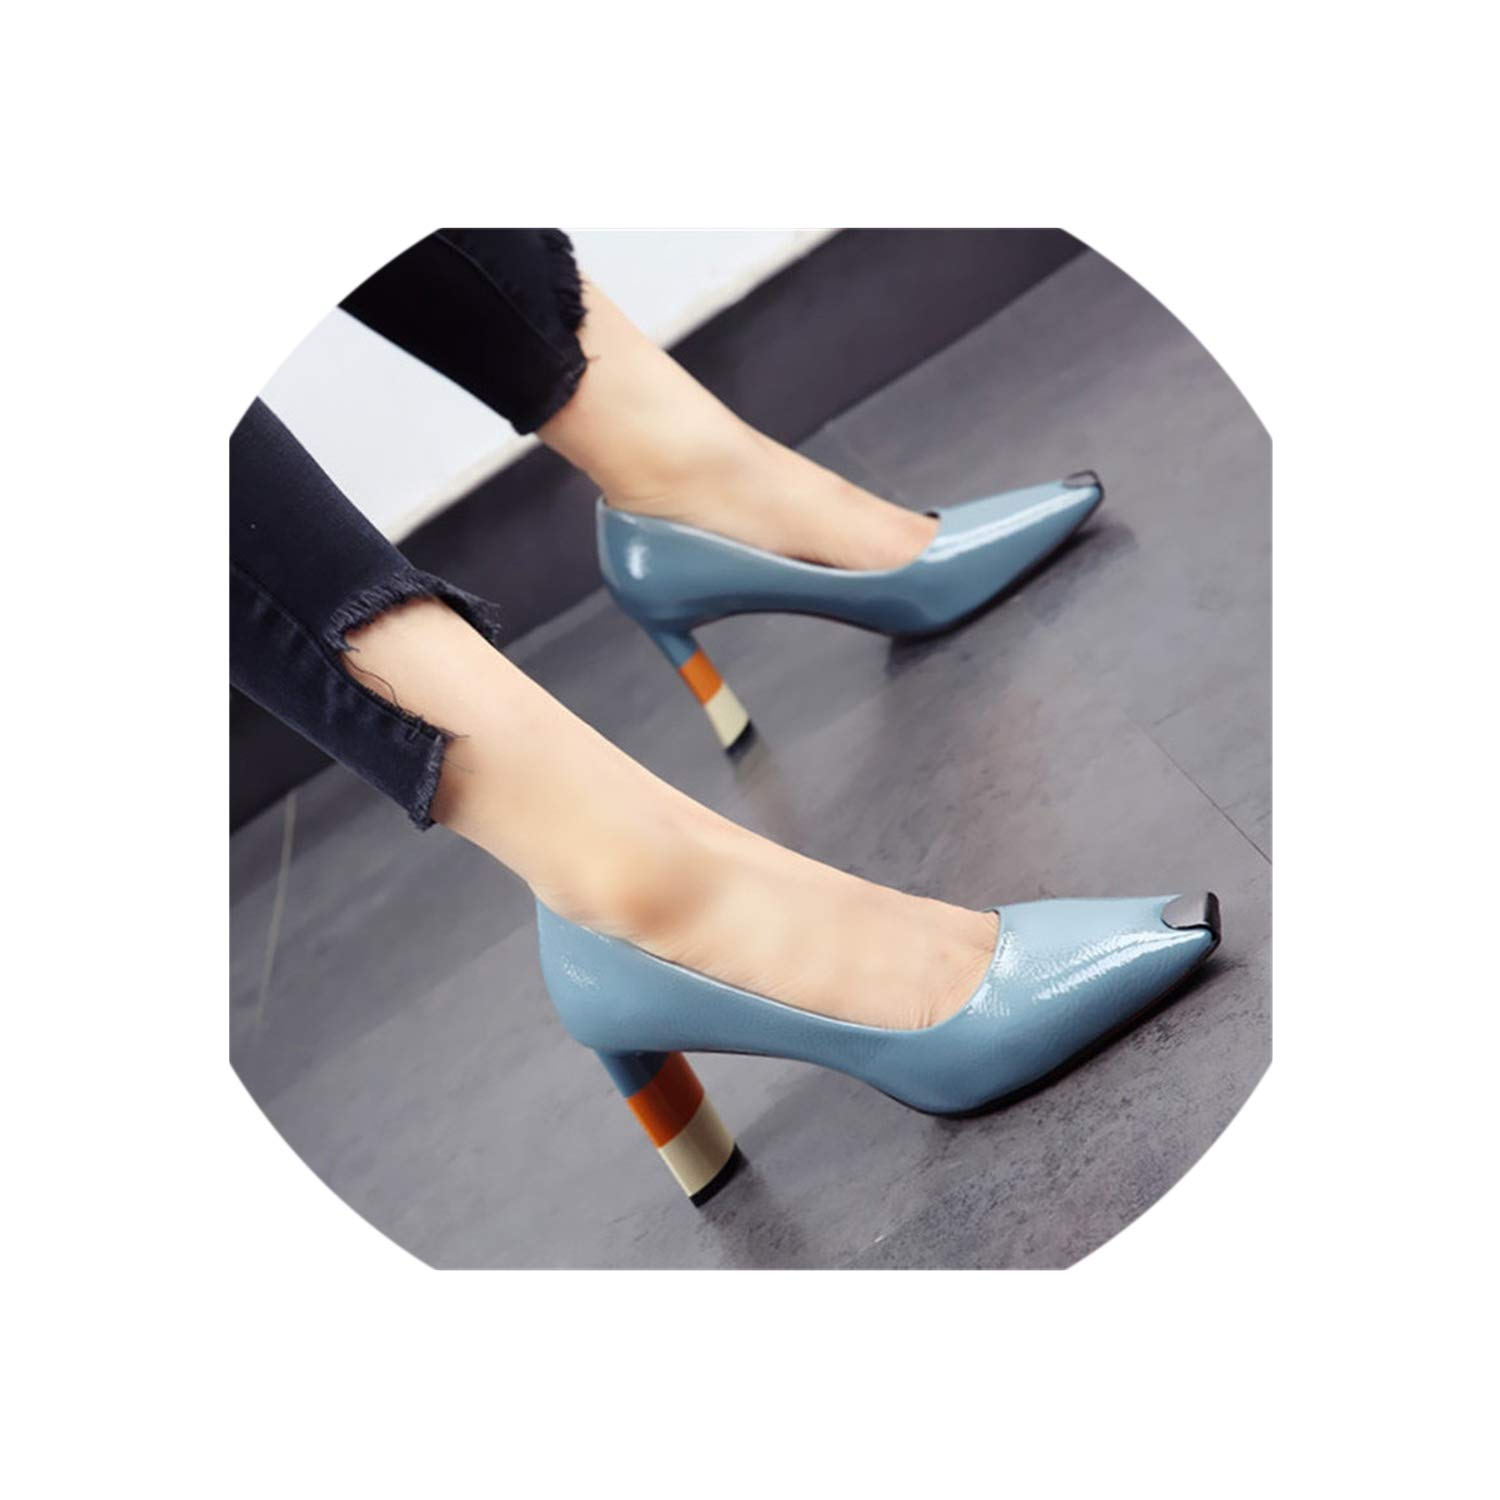 bluee colord Heel Women High Heel shoes Metal Square Toe Girls Party Wedding shoes Spring Women Pumps